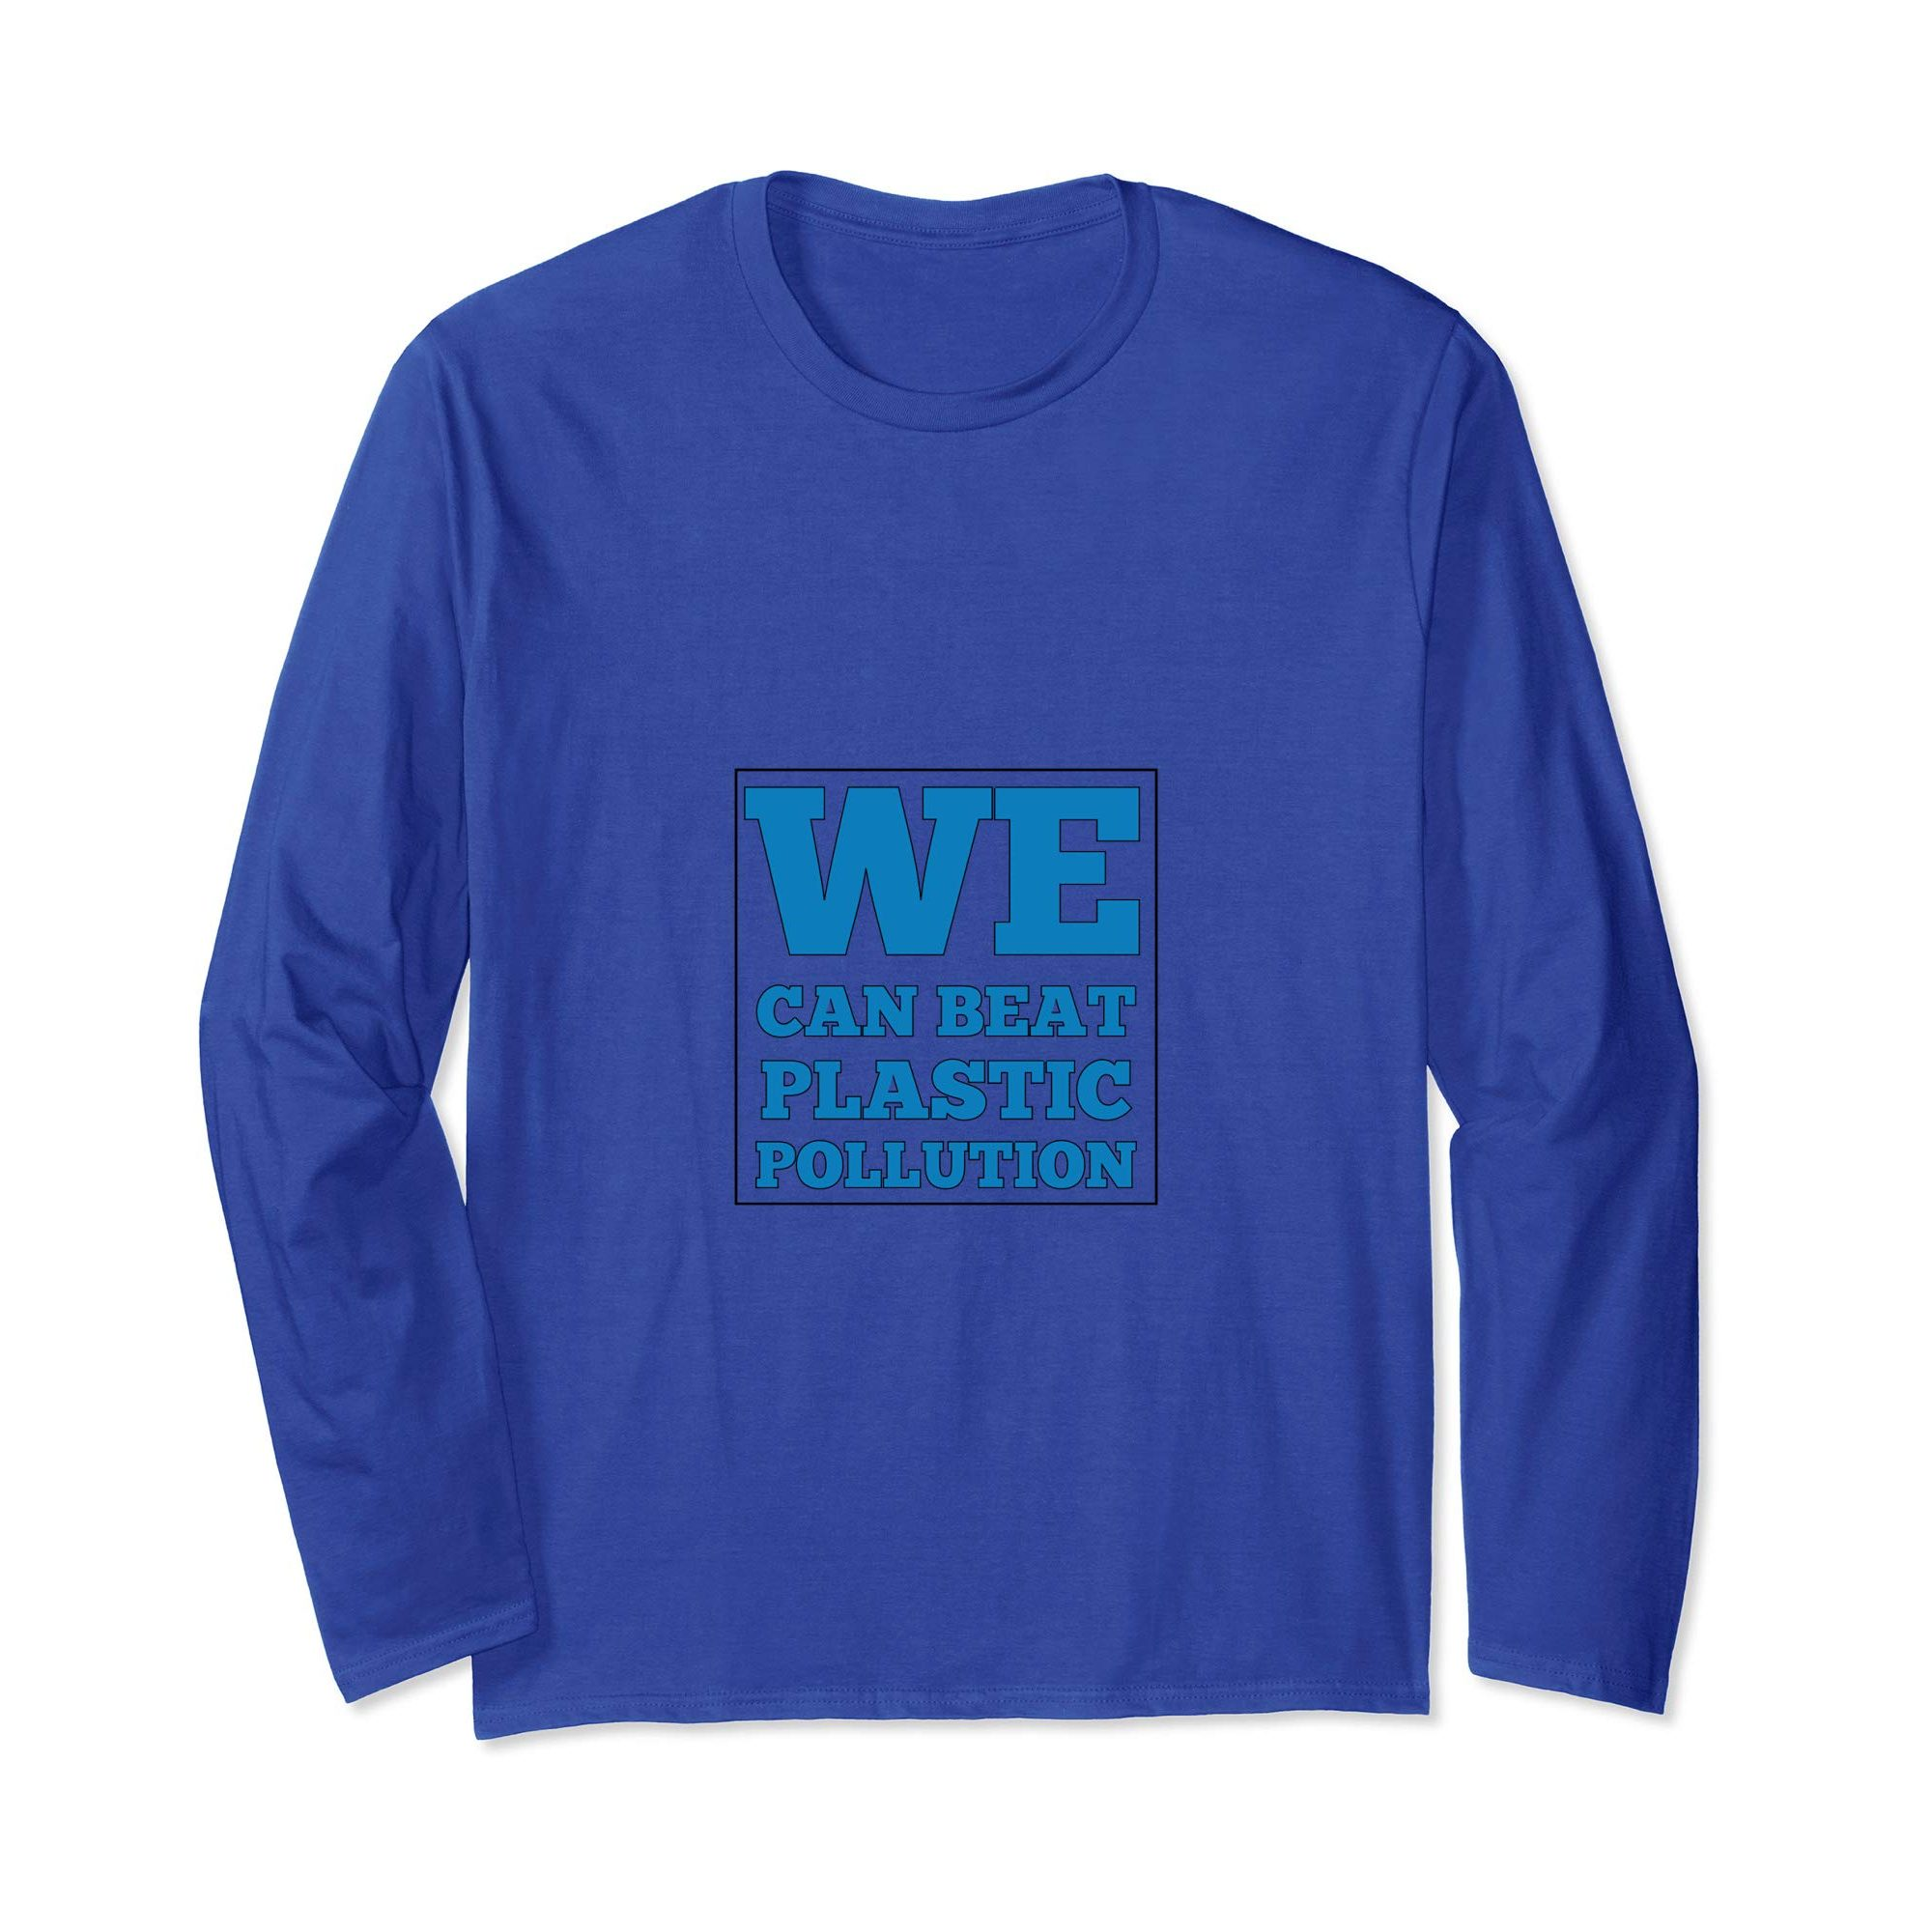 """BLUE LONG SLEEV GRAPHIC TSHIRT WITH """"WE CAN BEAT PLASTIC POLLUTION"""" SLOGAN"""